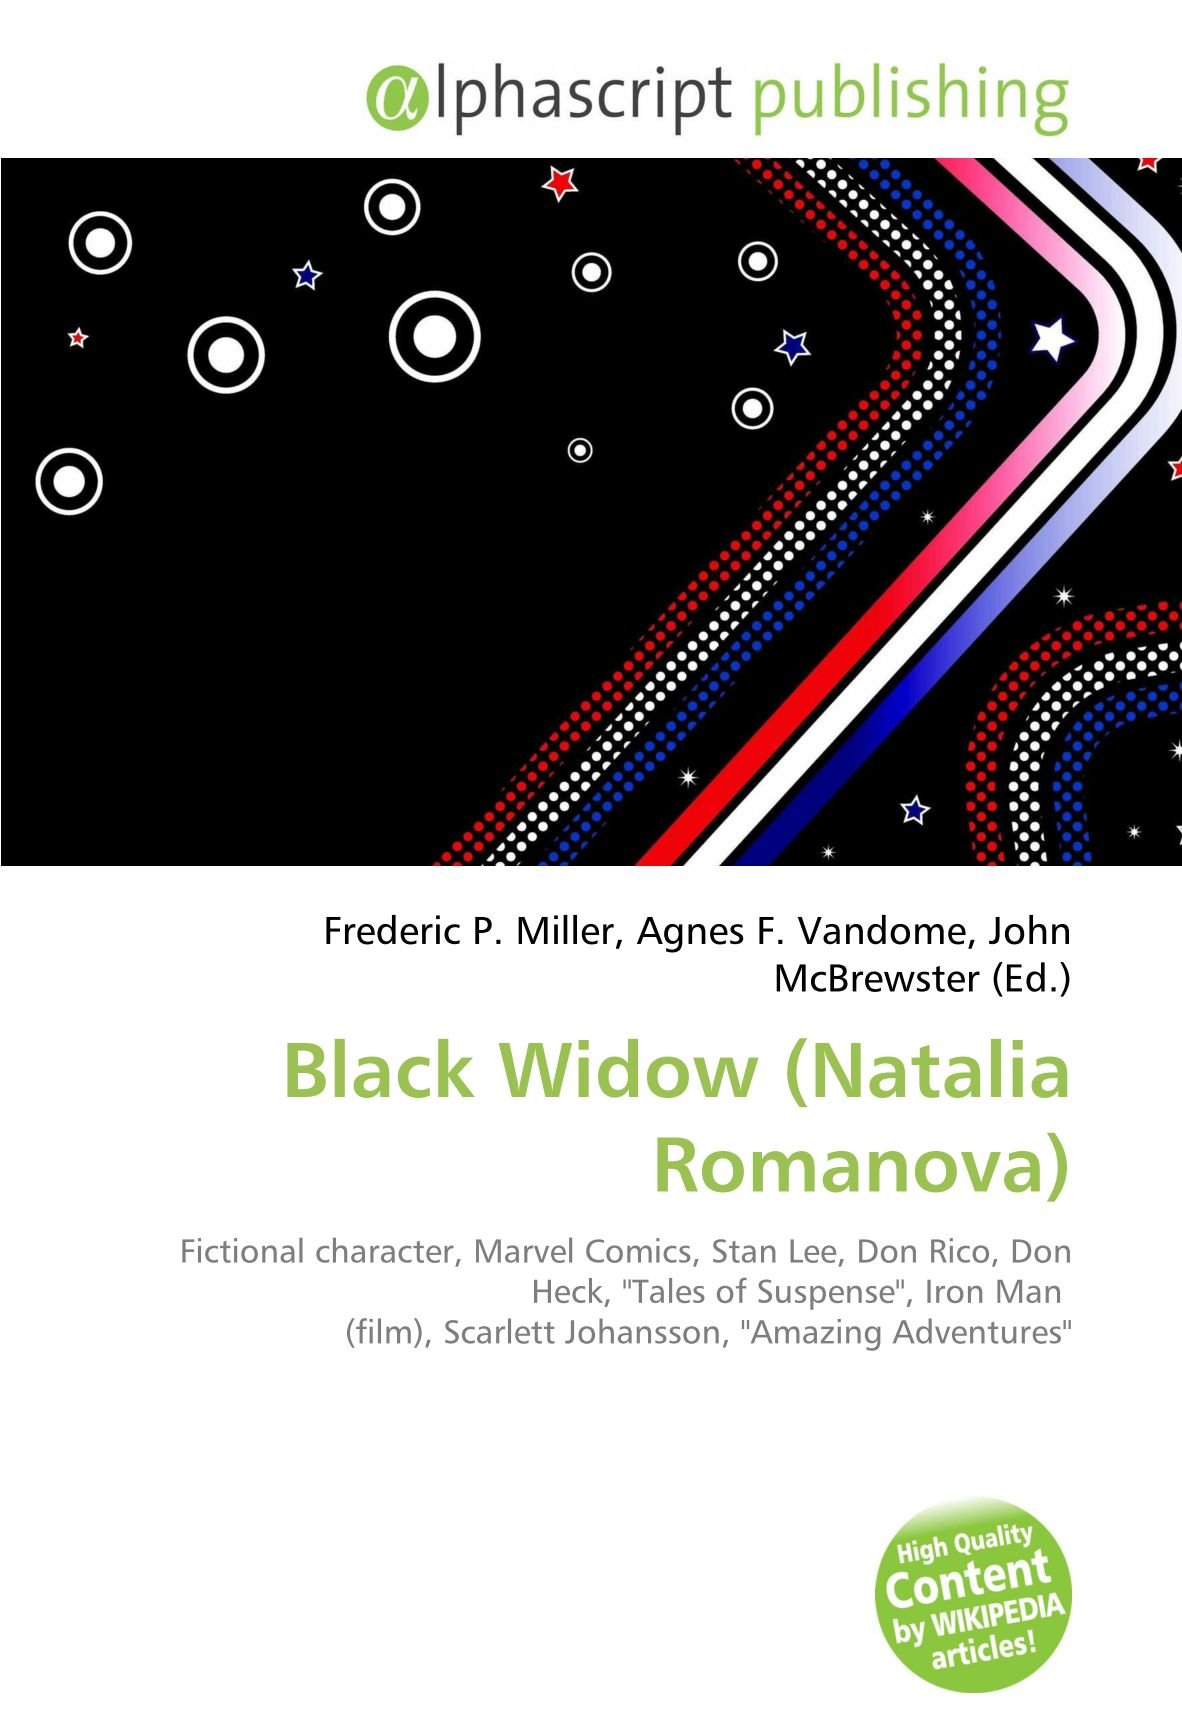 Black Widow Natalia Romanova : Fictional character, Marvel Comics, Stan Lee, Don Rico, Don Heck, Tales of Suspense, Iron Man film , Scarlett Johansson, Amazing Adventures: Amazon.es: Miller, Frederic P, Vandome, Agnes